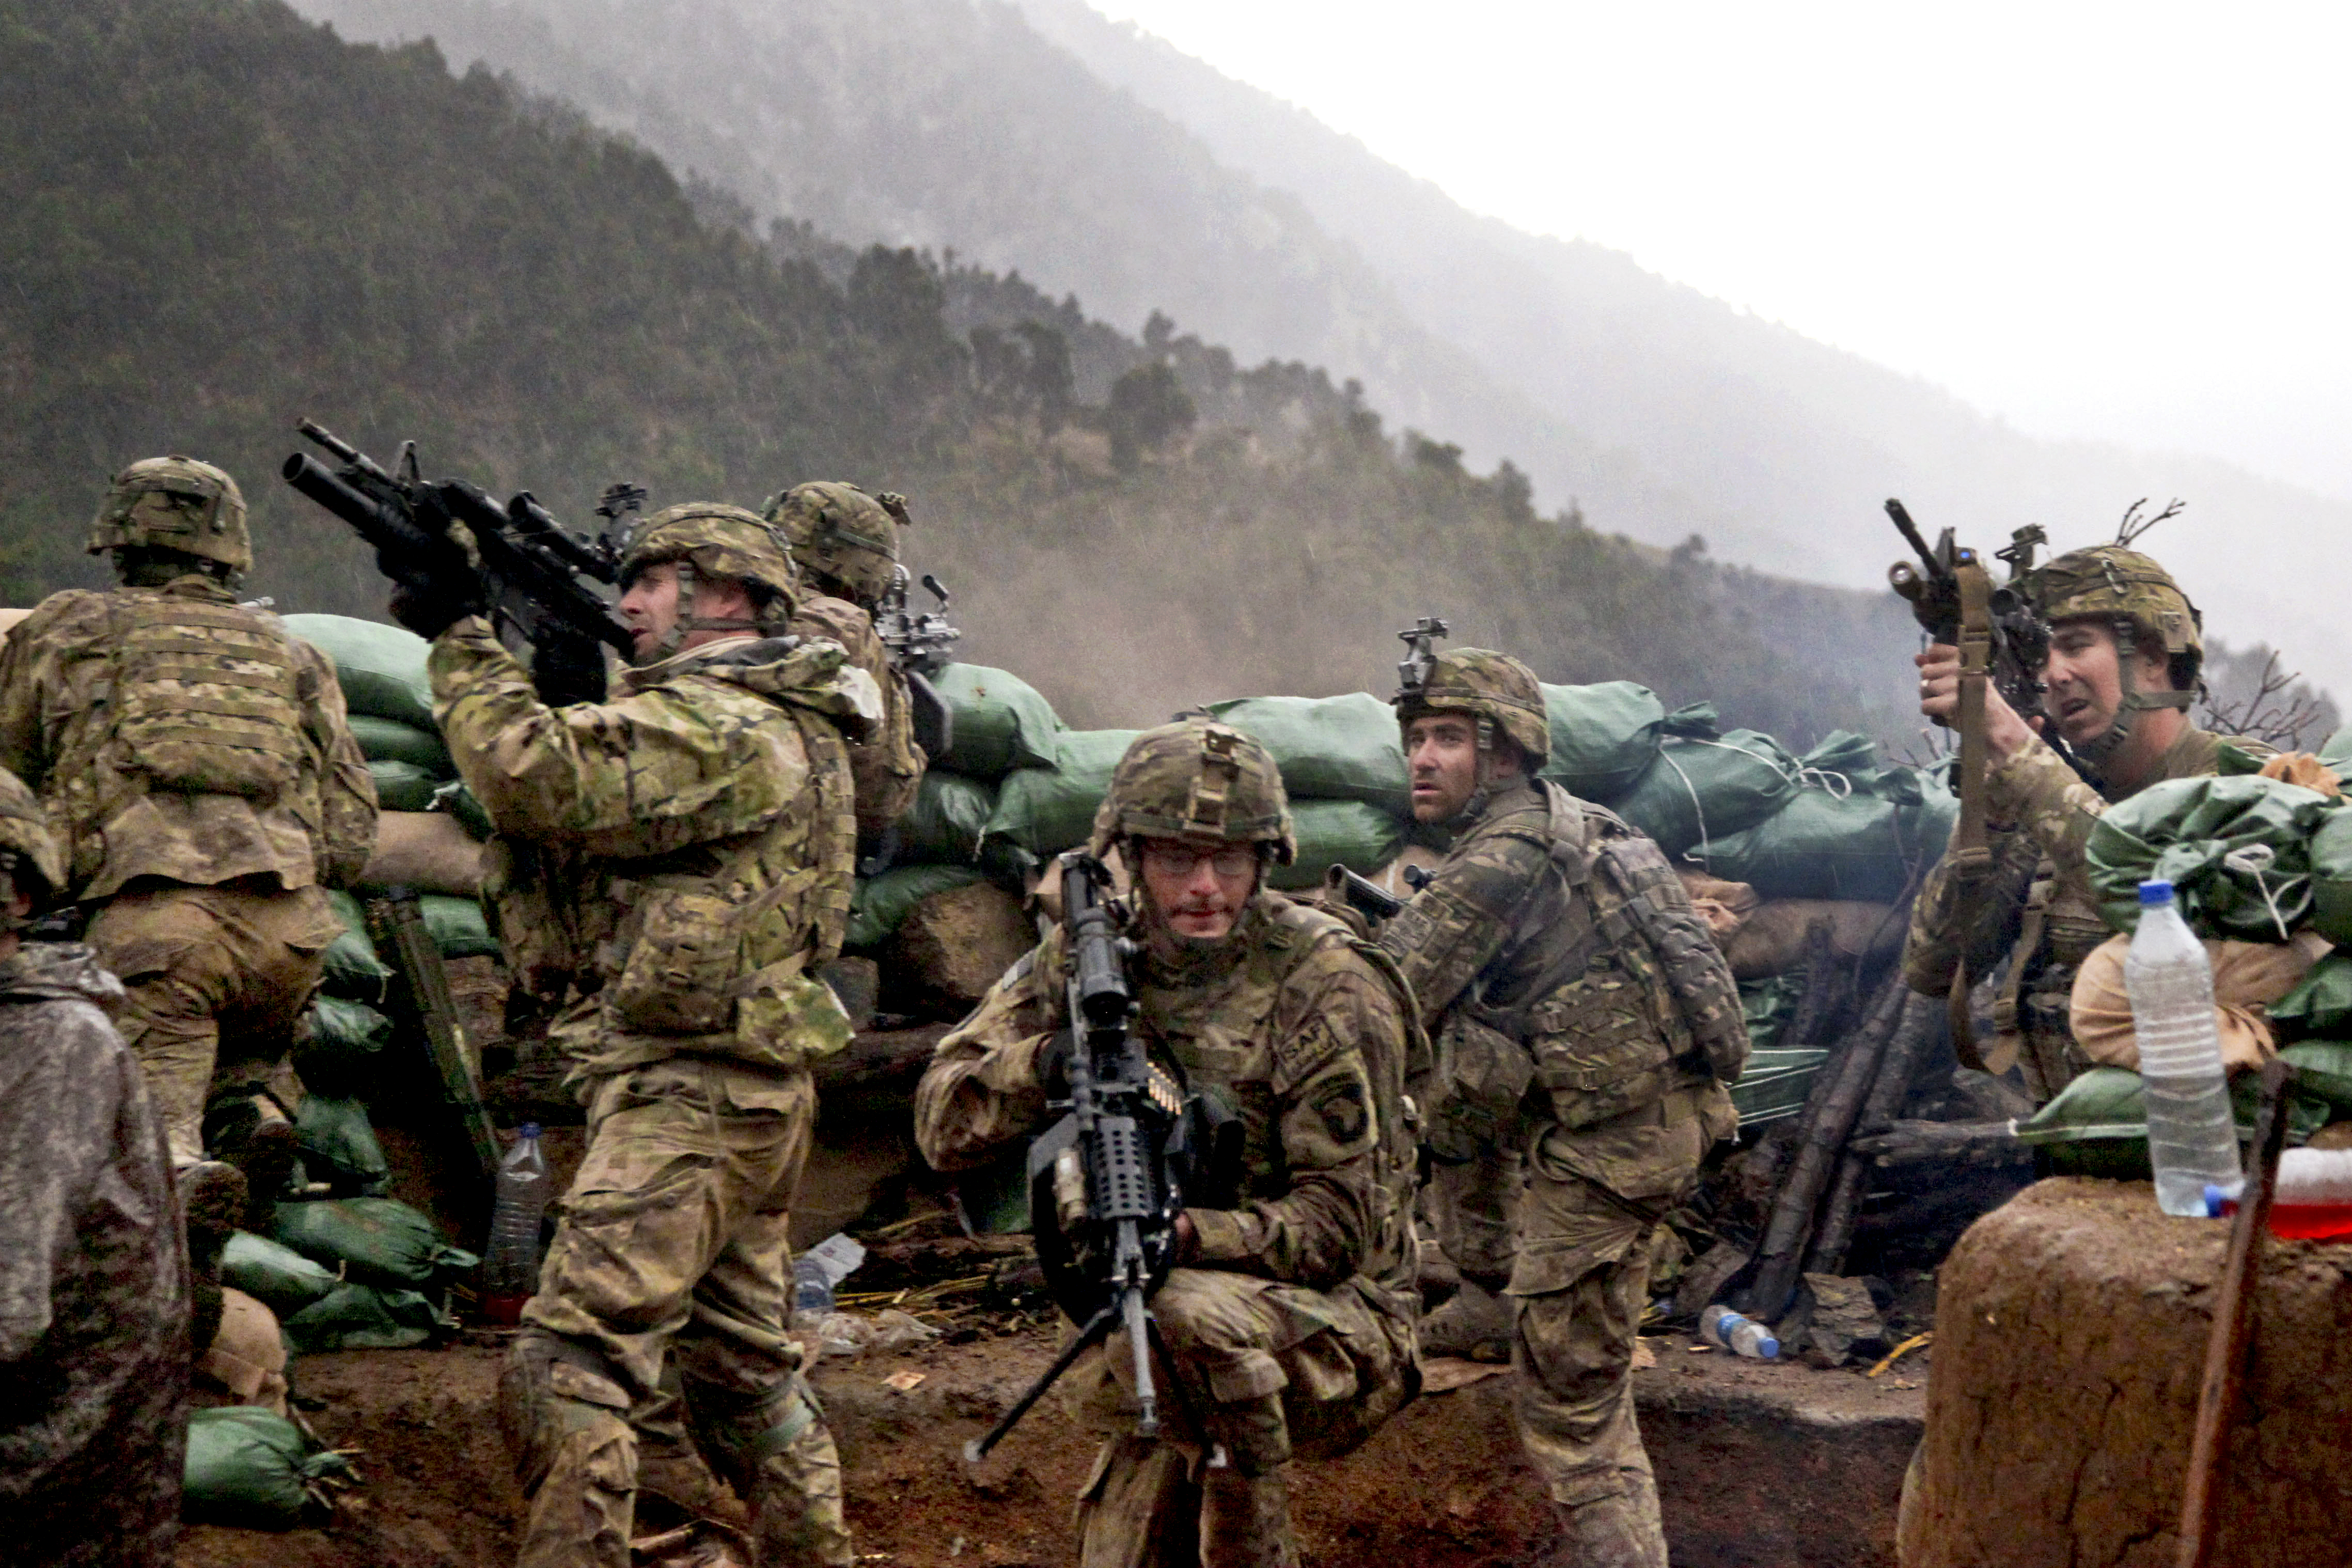 Fotos Del Army http://commons.wikimedia.org/wiki/File:U.S._Army_firefight_in_Kunar.jpg